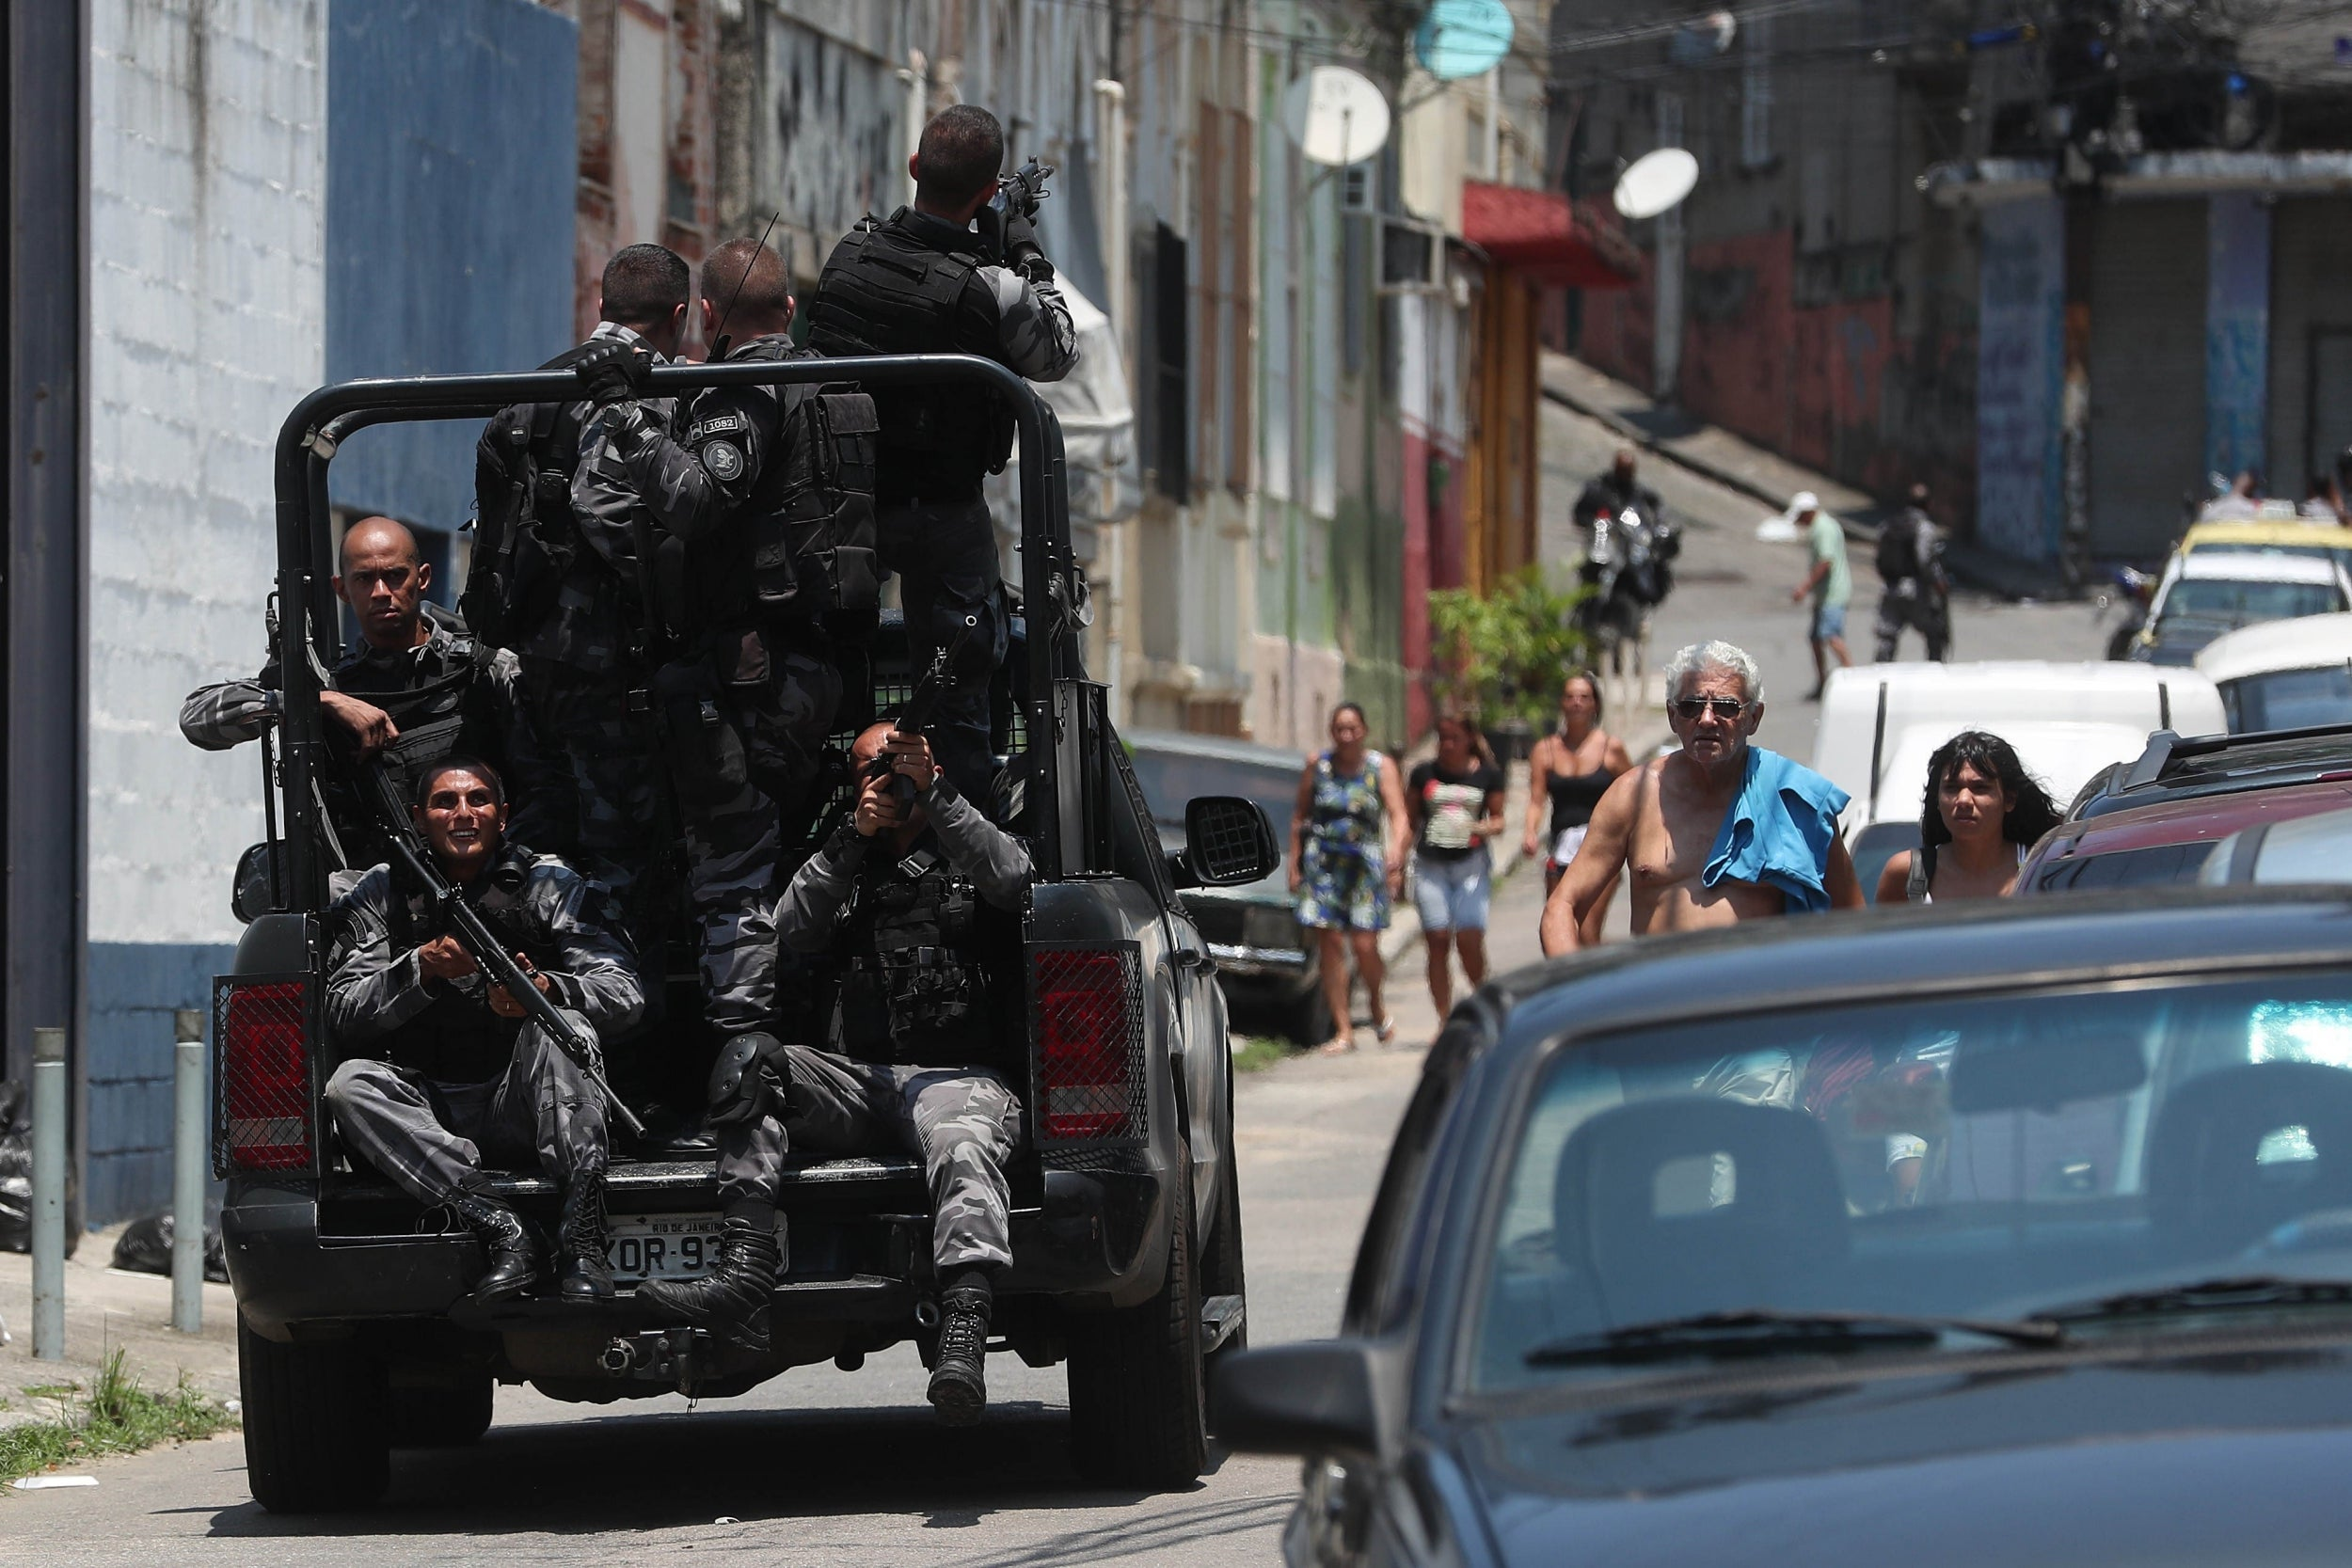 'Die in the streets like cockroaches': The truth behind Rio's record year of police killings